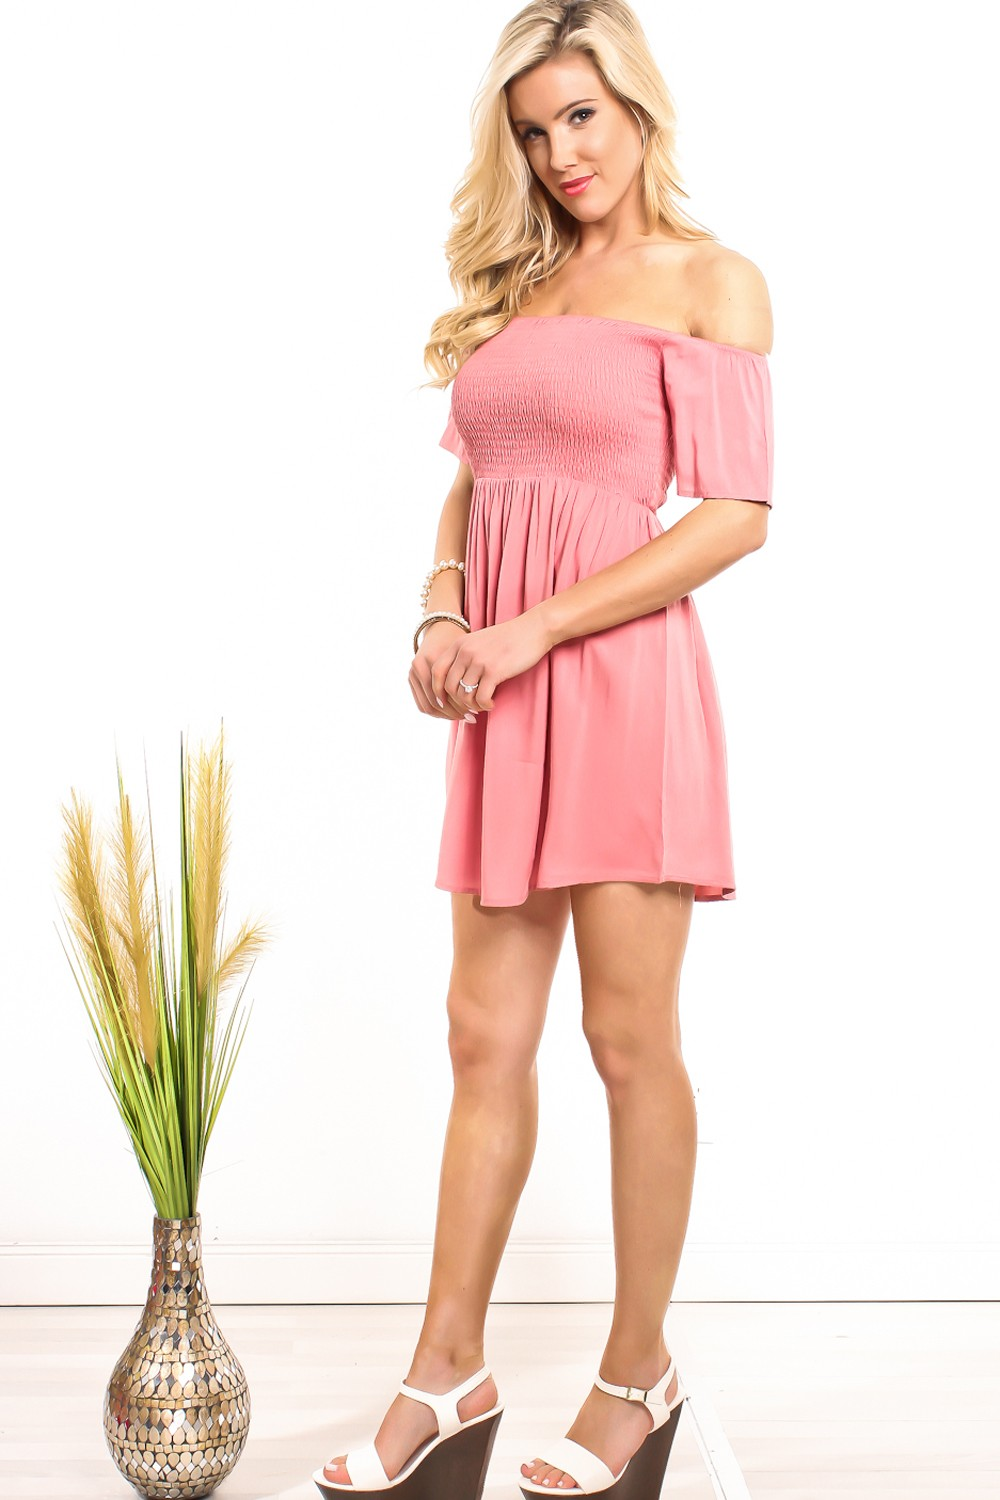 dusty rose casual dress photo - 1